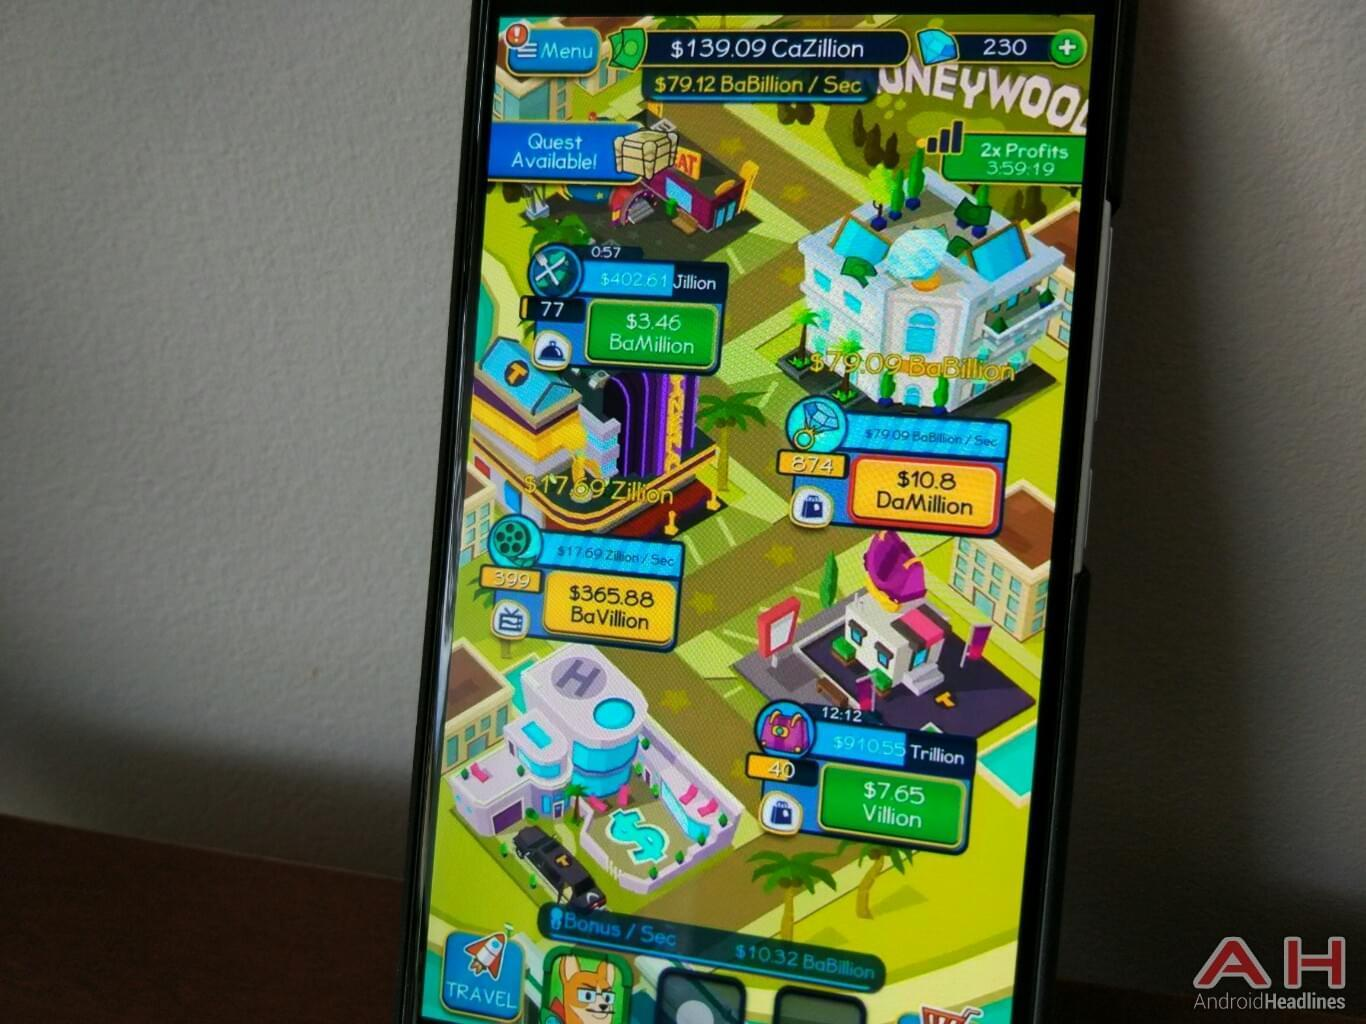 build your business empire in taps to riches game android news